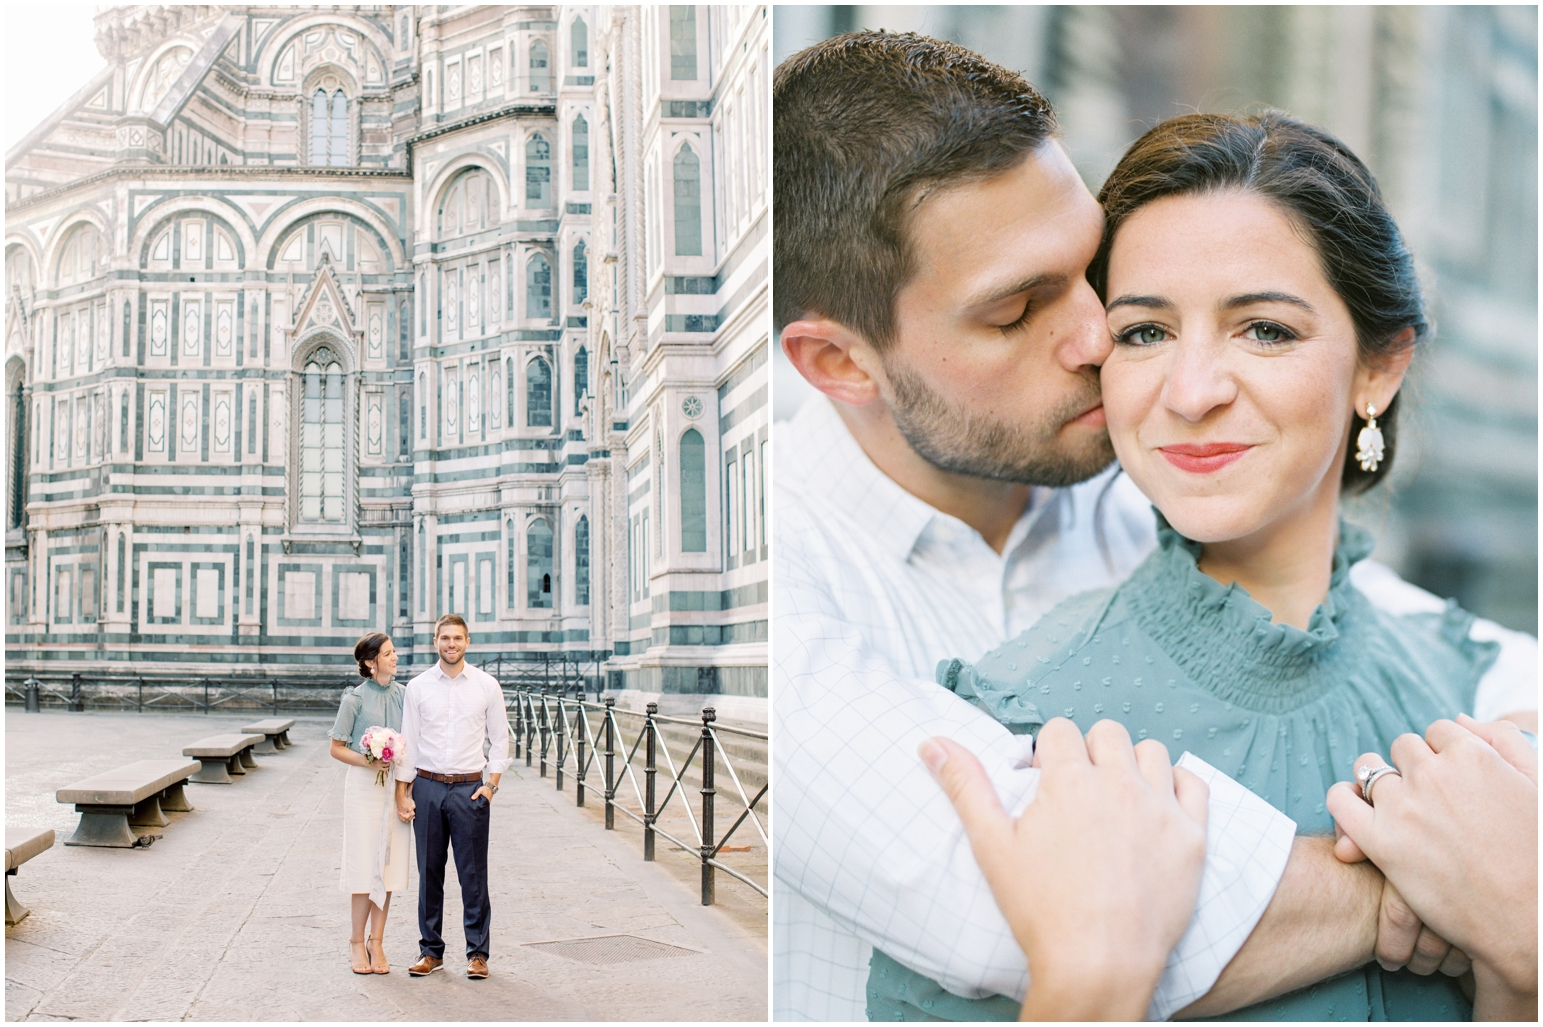 Lisa Silva Photography- Jacksonville, St. Augustine, Amelia Island, Ponte Vedra Beach, Fernandina Beach, North East Florida Fine Art Film Photographer- Engagement Session in Florence, Italy_0016.jpg